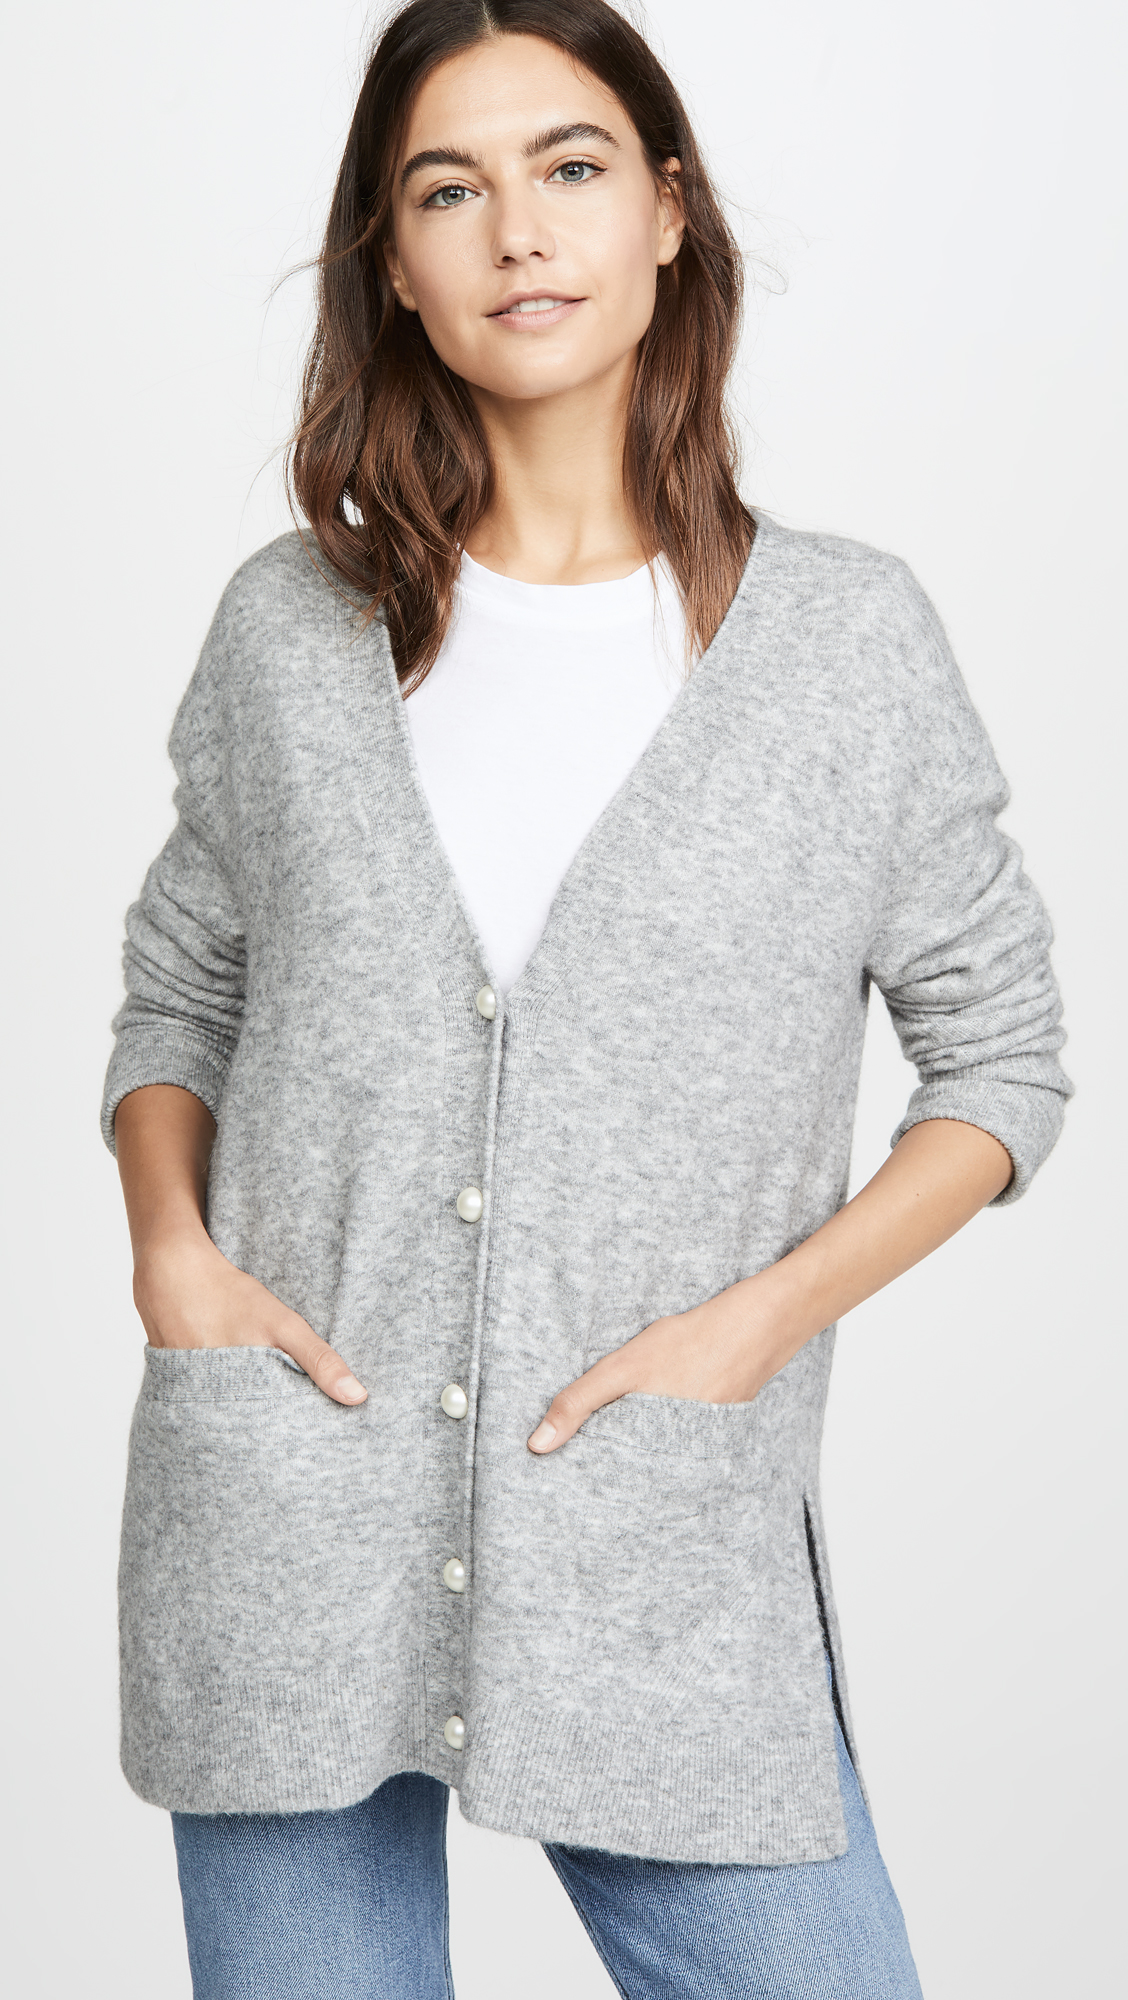 Pocket Cardigan with Pearl Buttons